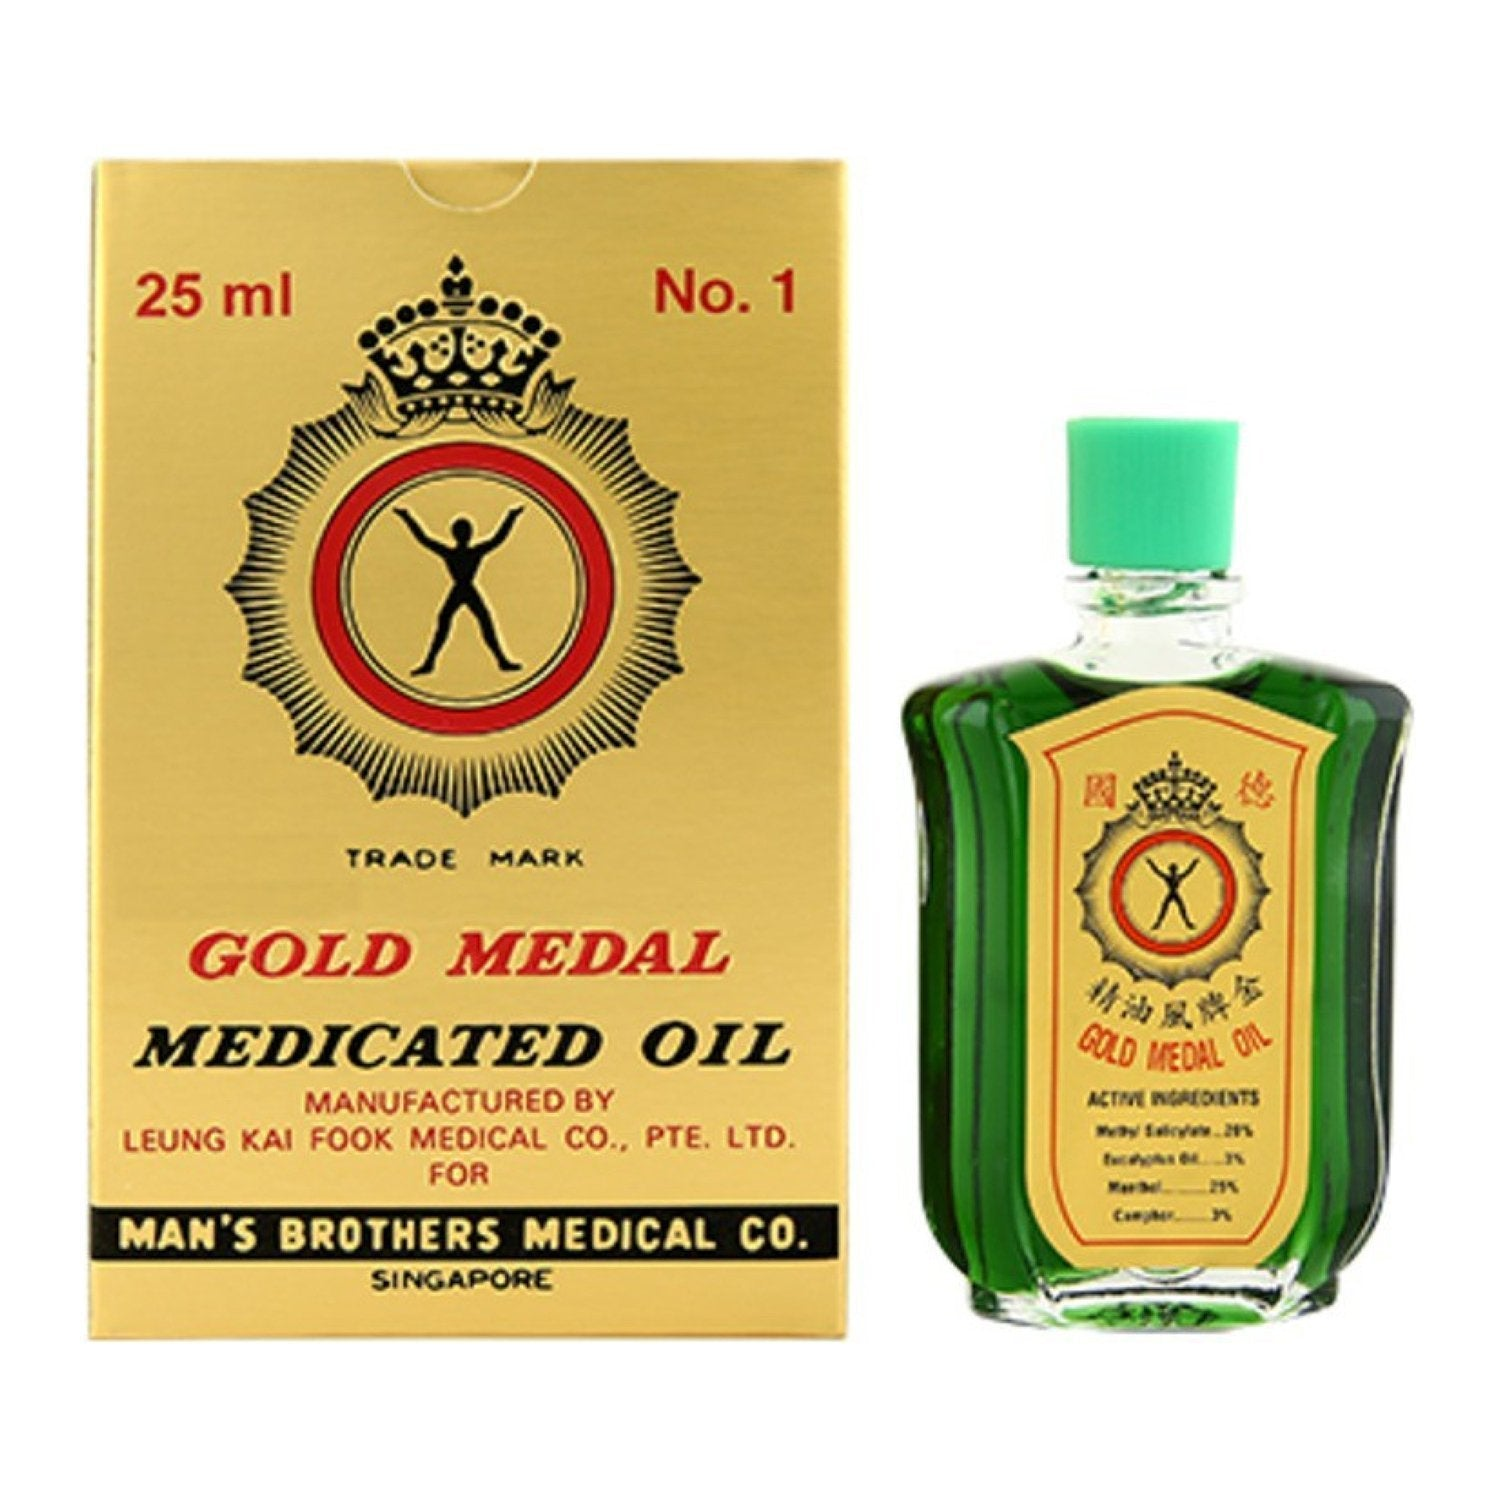 Gold Medal Oil Pain relief with refreshing aroma - 25ml